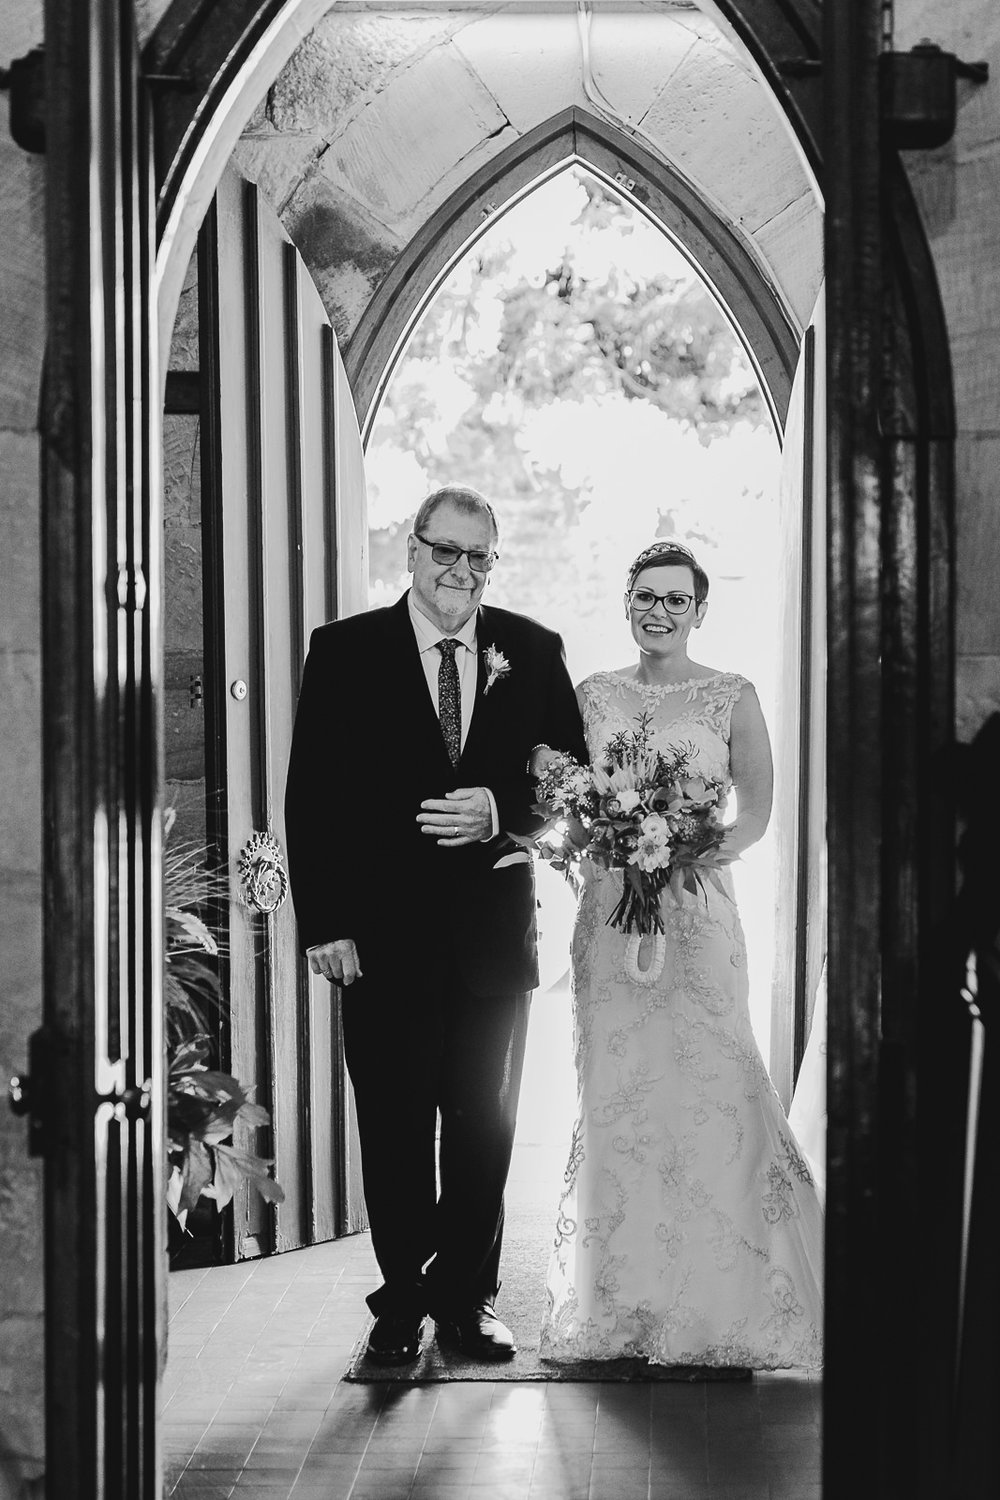 20170909 - Megan & Dave Wedding 092.jpg